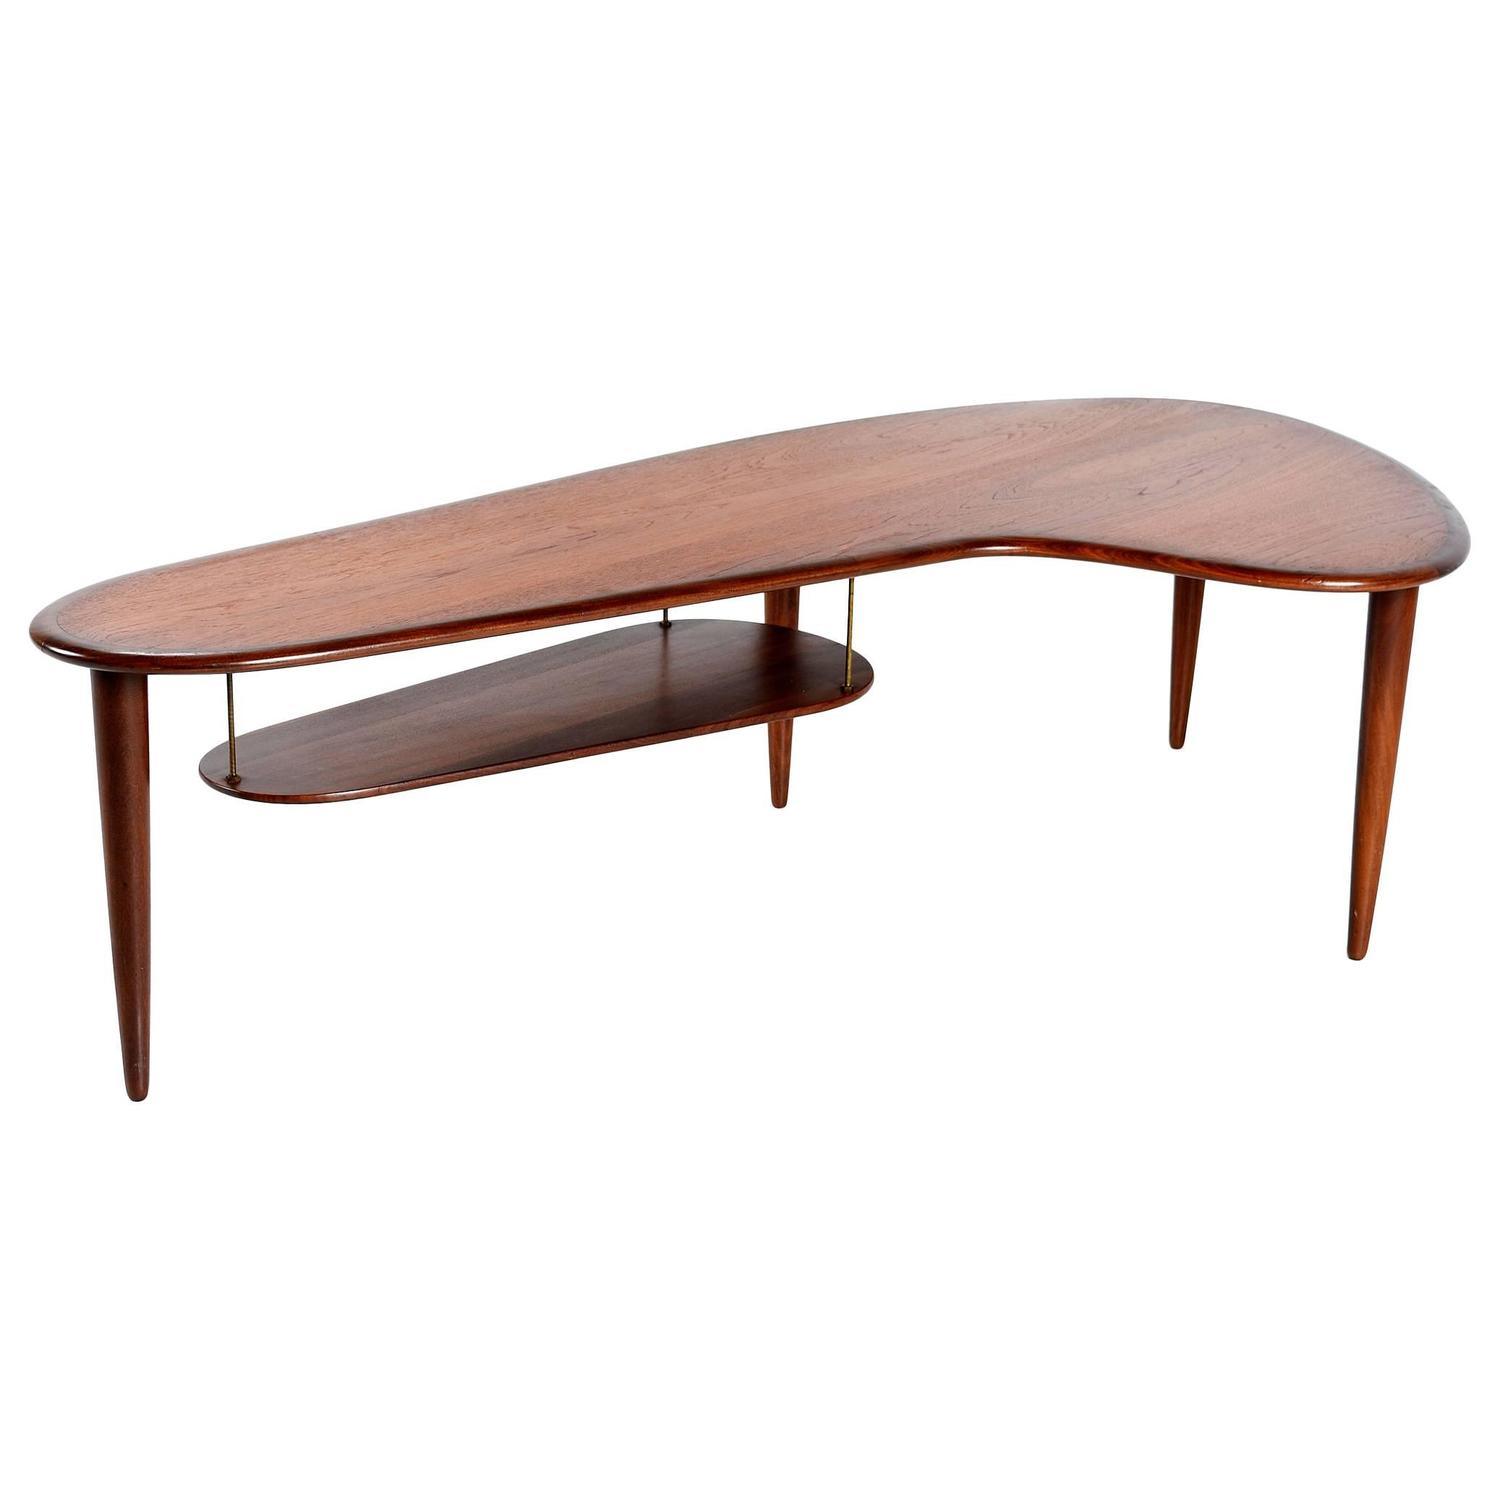 Mid Century Modern Danish Teak Boomerang Coffee Table 1950s at